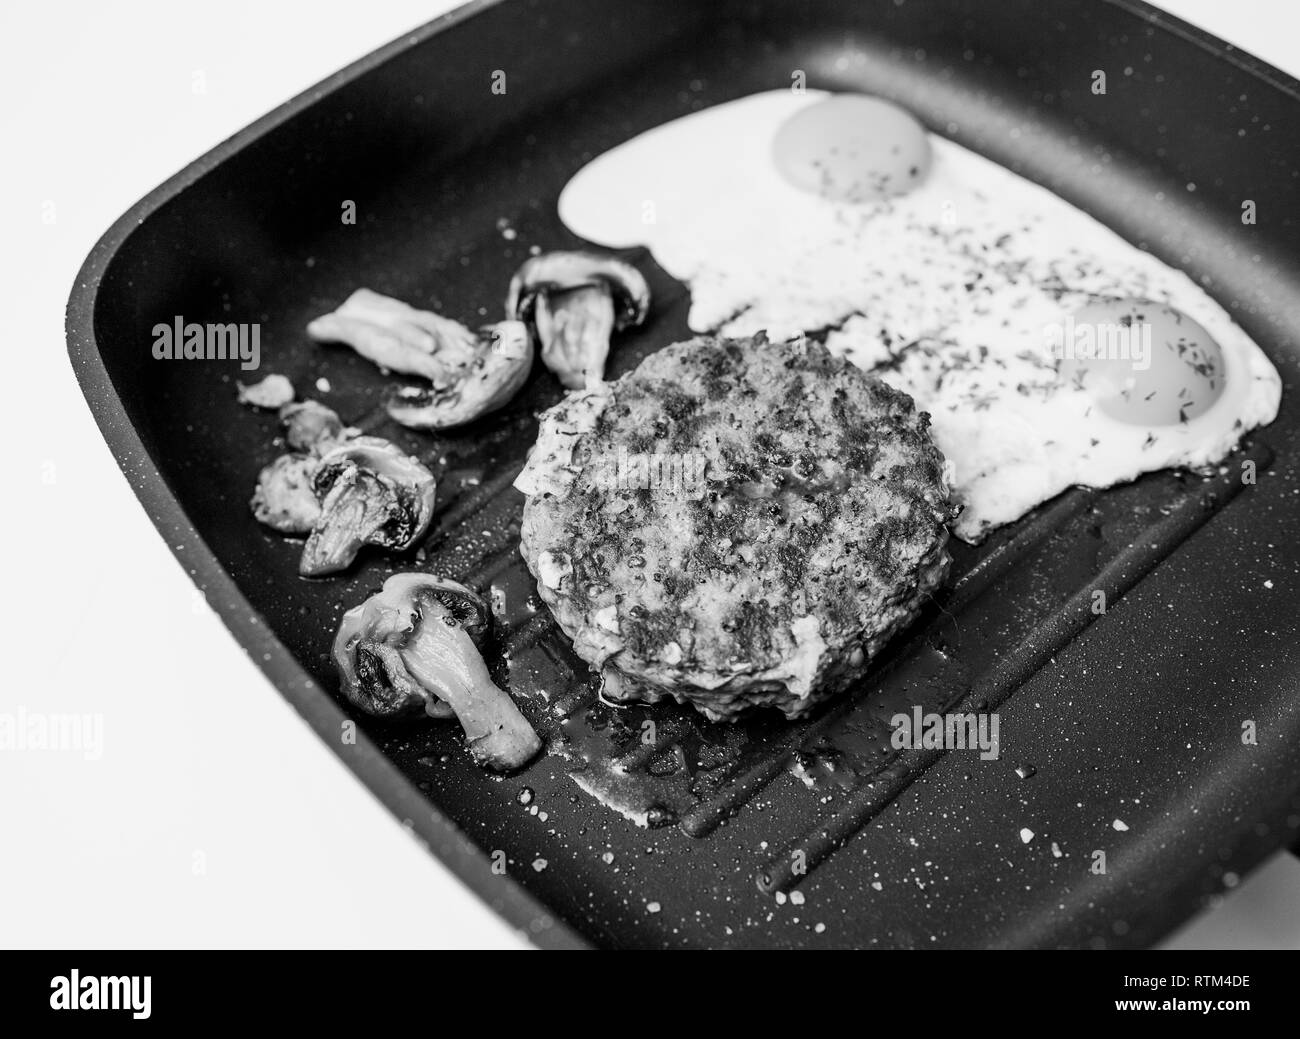 Above of delicious raw beef meat burger cooked in frying pan on teflon grill surface in kitchen with two fried eggs with organic fried champignons black and white image  - Stock Image